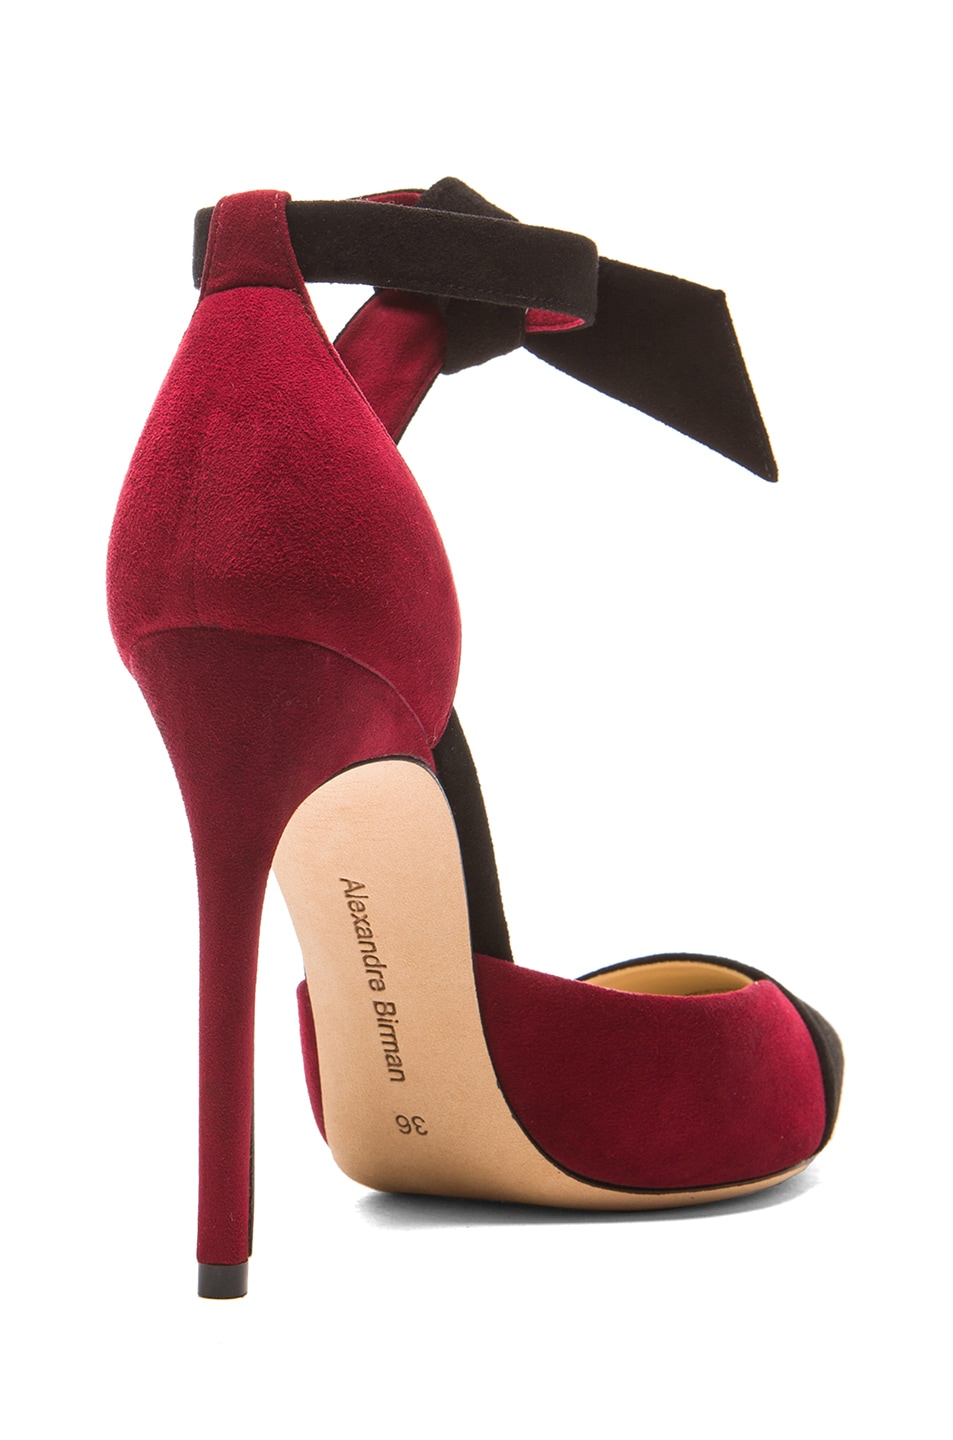 Image 3 of Alexandre Birman Leena Suede Pumps in Vino & Black